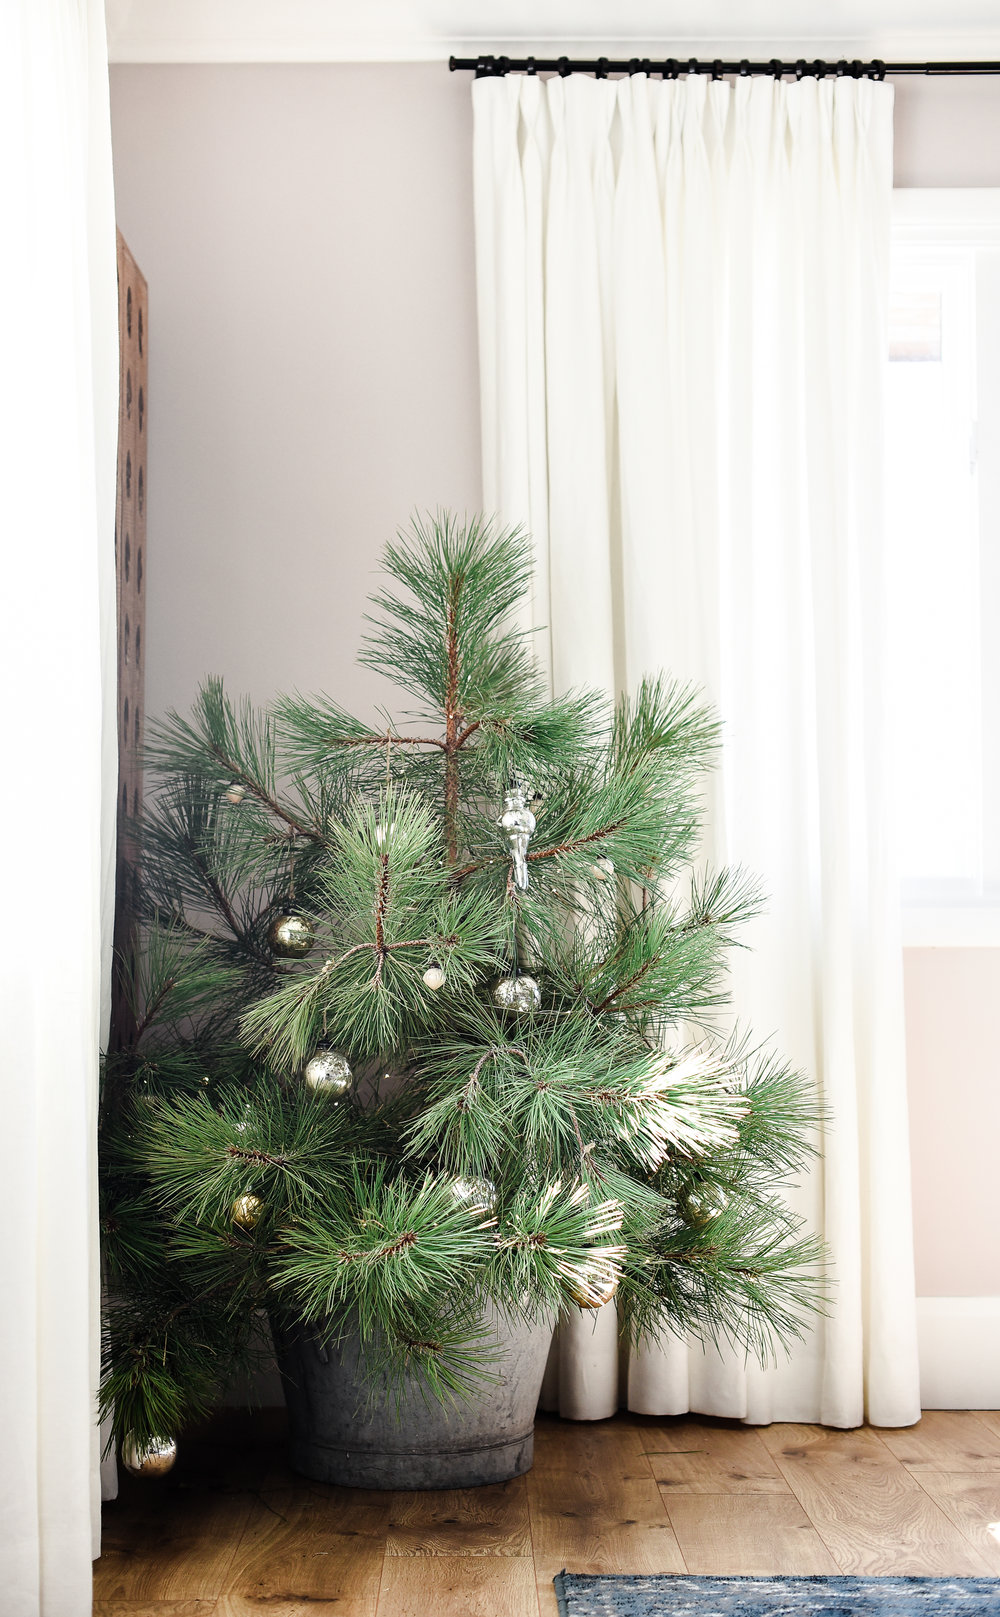 Simple farmhouse Christmas decorating ideas minimal tree | boxwoodavenue.com #christmasdecor #farmhousechristmas